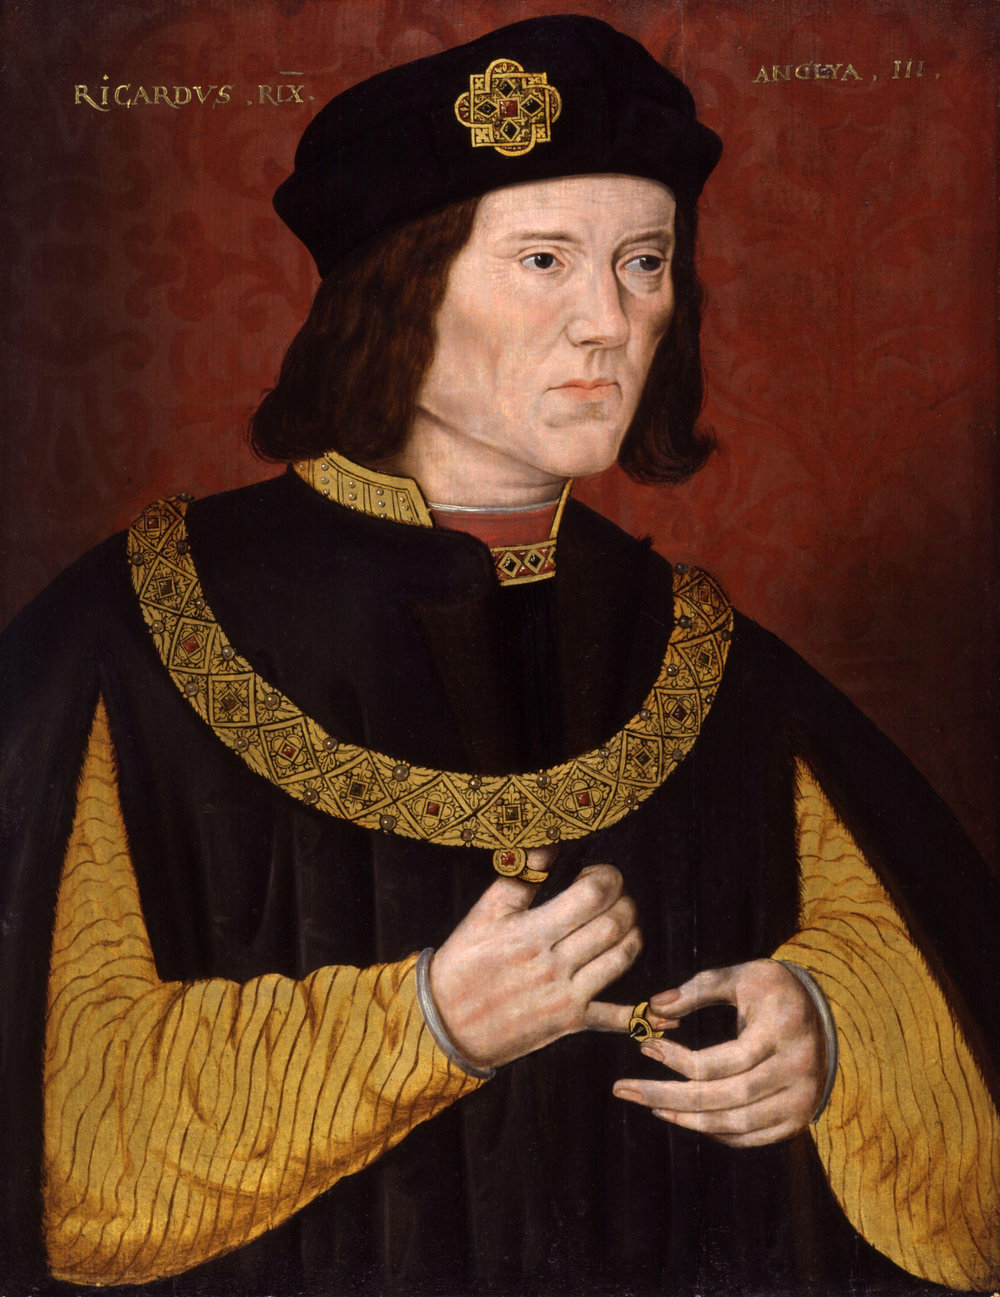 King_Richard_III_from_NPG_(2).jpg